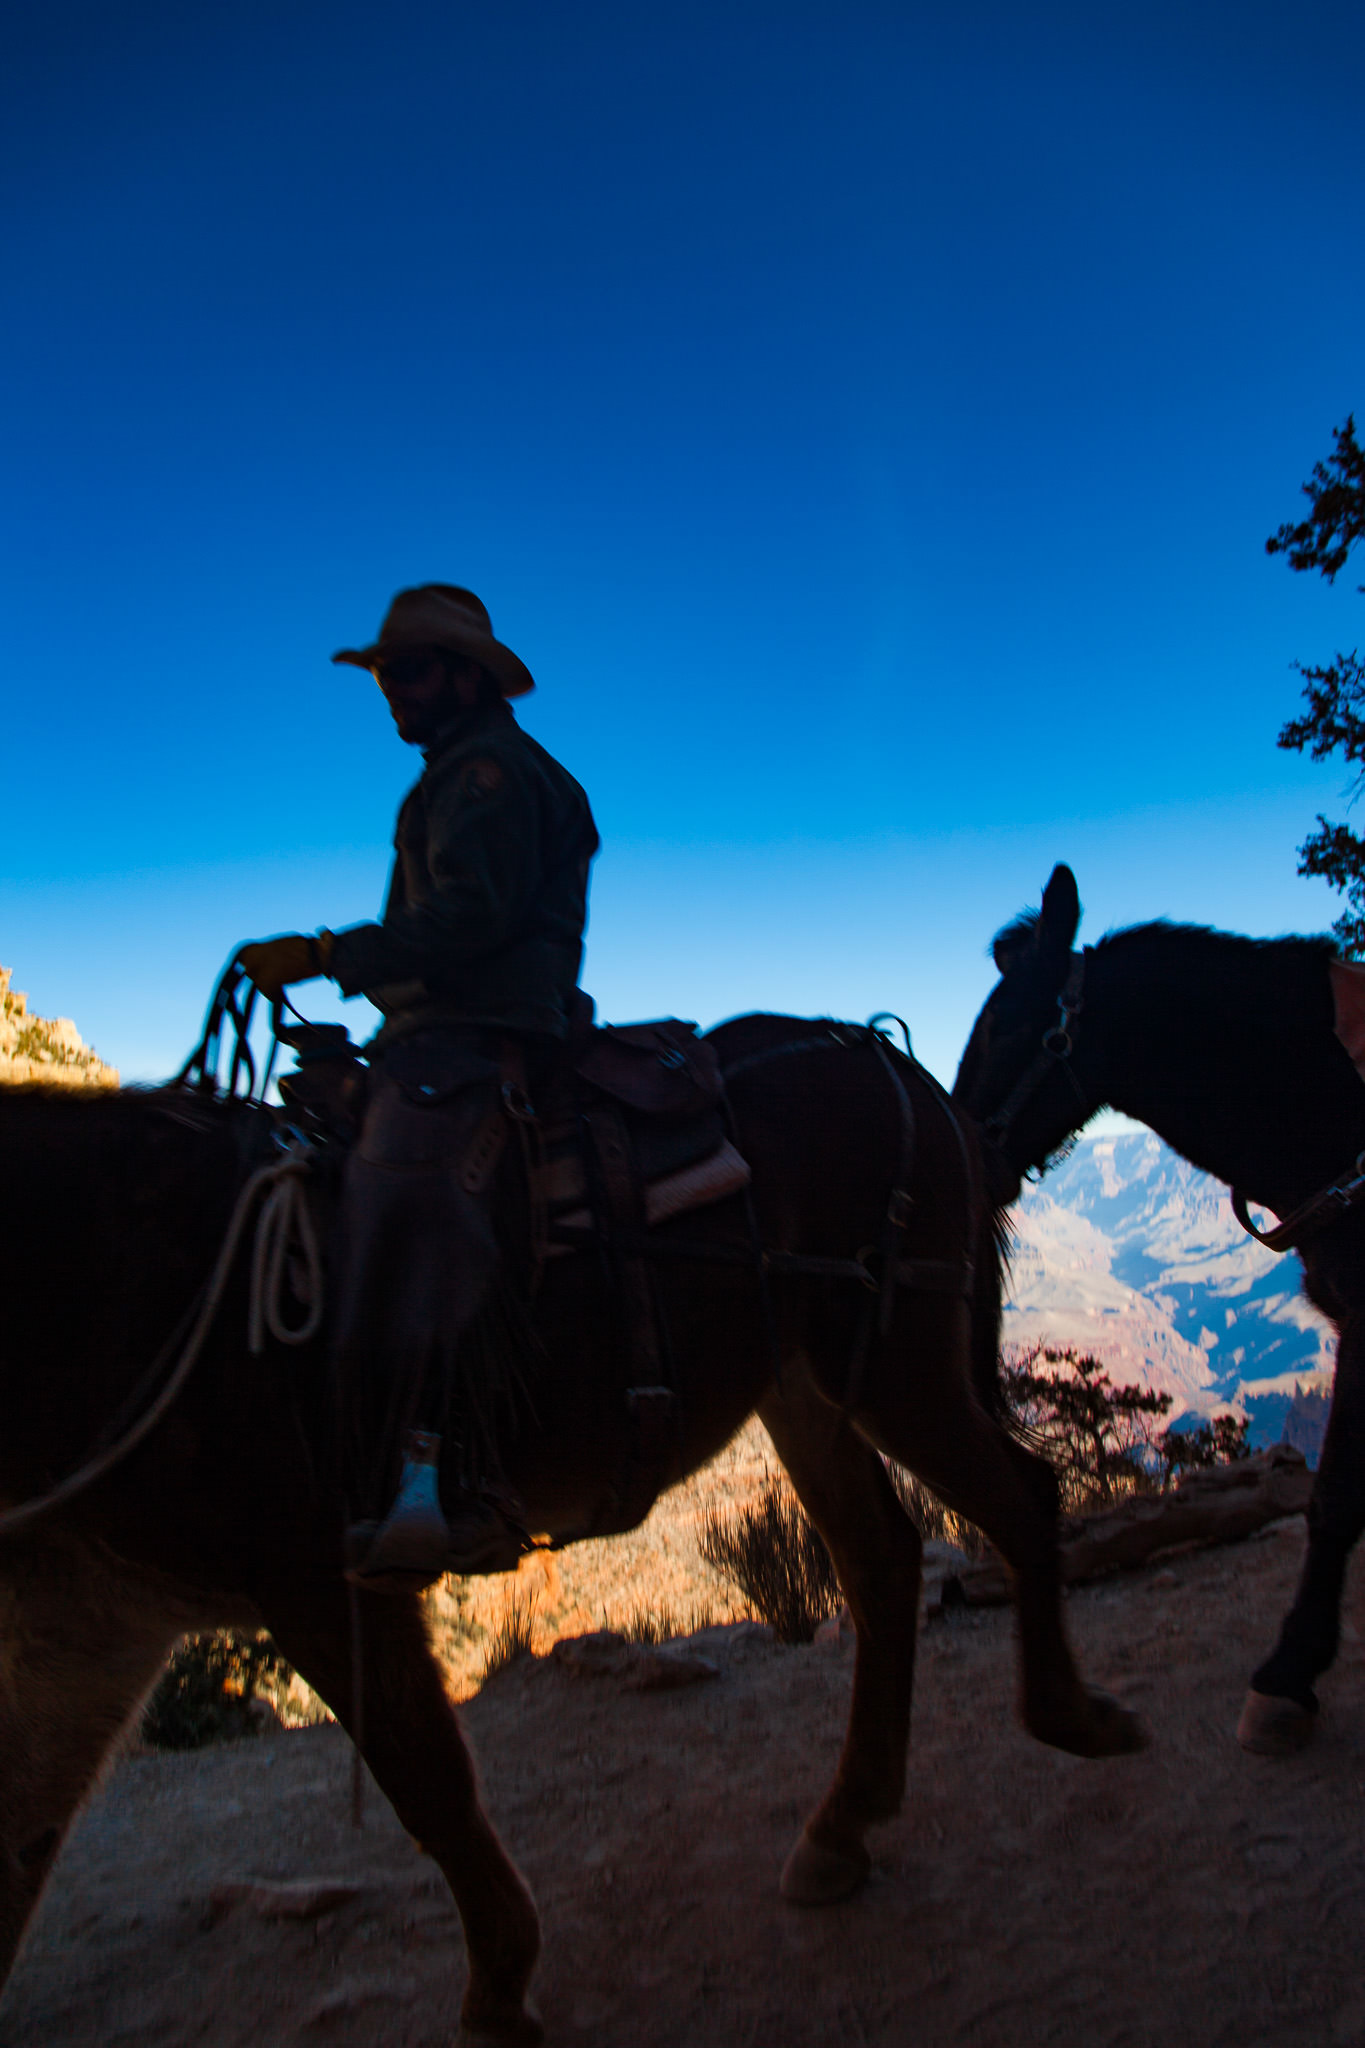 Grand Canyon Hike: Mules on the Trail